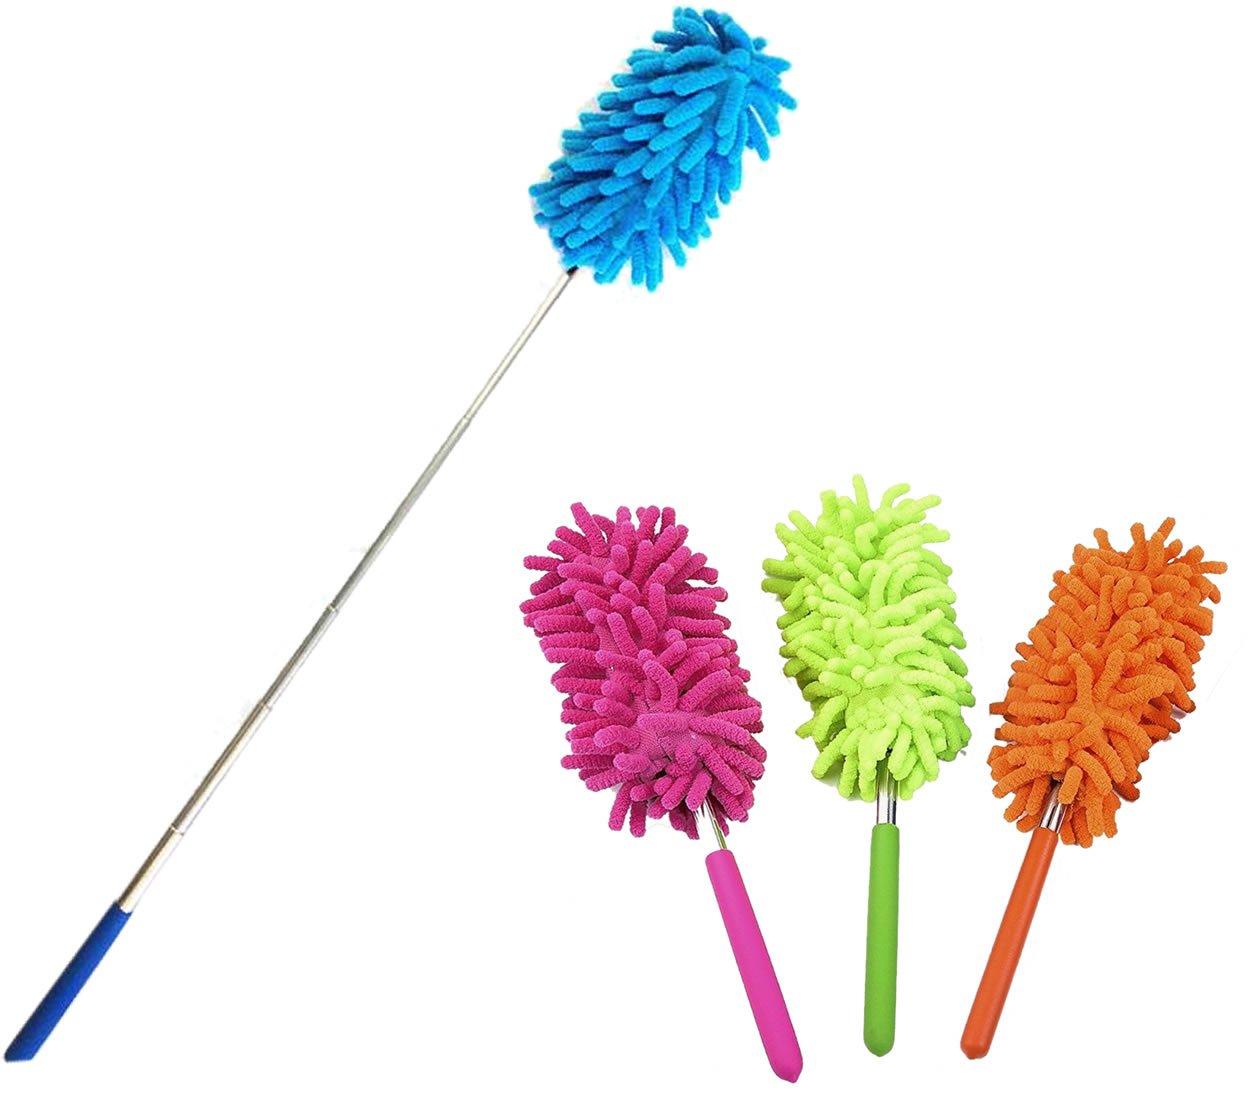 """2-Pk Telescopic Retractable Microfiber Duster, Extend 10"""" to 28"""", Washable Extendable Brush for Home and Office Compact Storage, Colors may vary"""